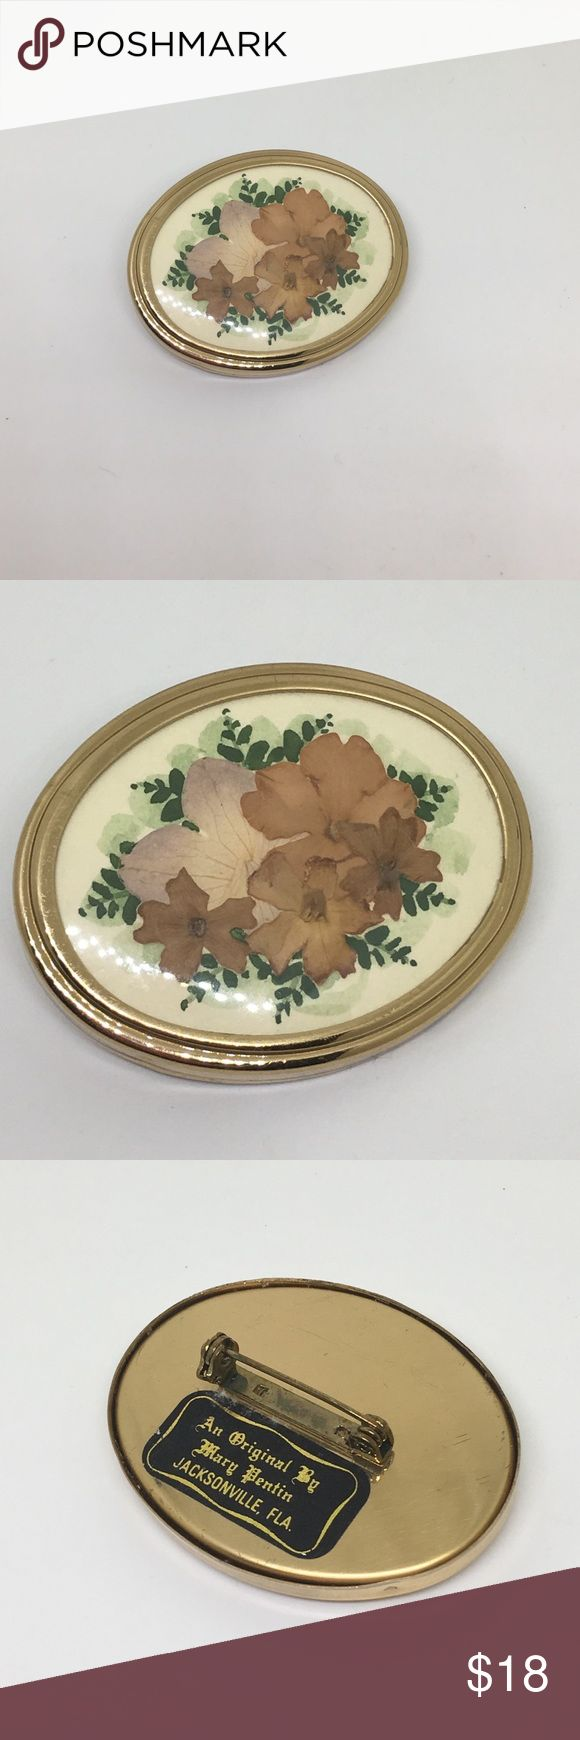 """🆕Vintage Marked Dried Flower Gold Brooch A graceful handmade brooch on a gold setting with dried flowers. Marked in back """"An Original by Mary Pentin; Jacksonville Fla"""". In excellent vintage condition! About 2"""" x 1"""". Delight a Vintage lover with a signed piece! Vintage Jewelry Brooches"""